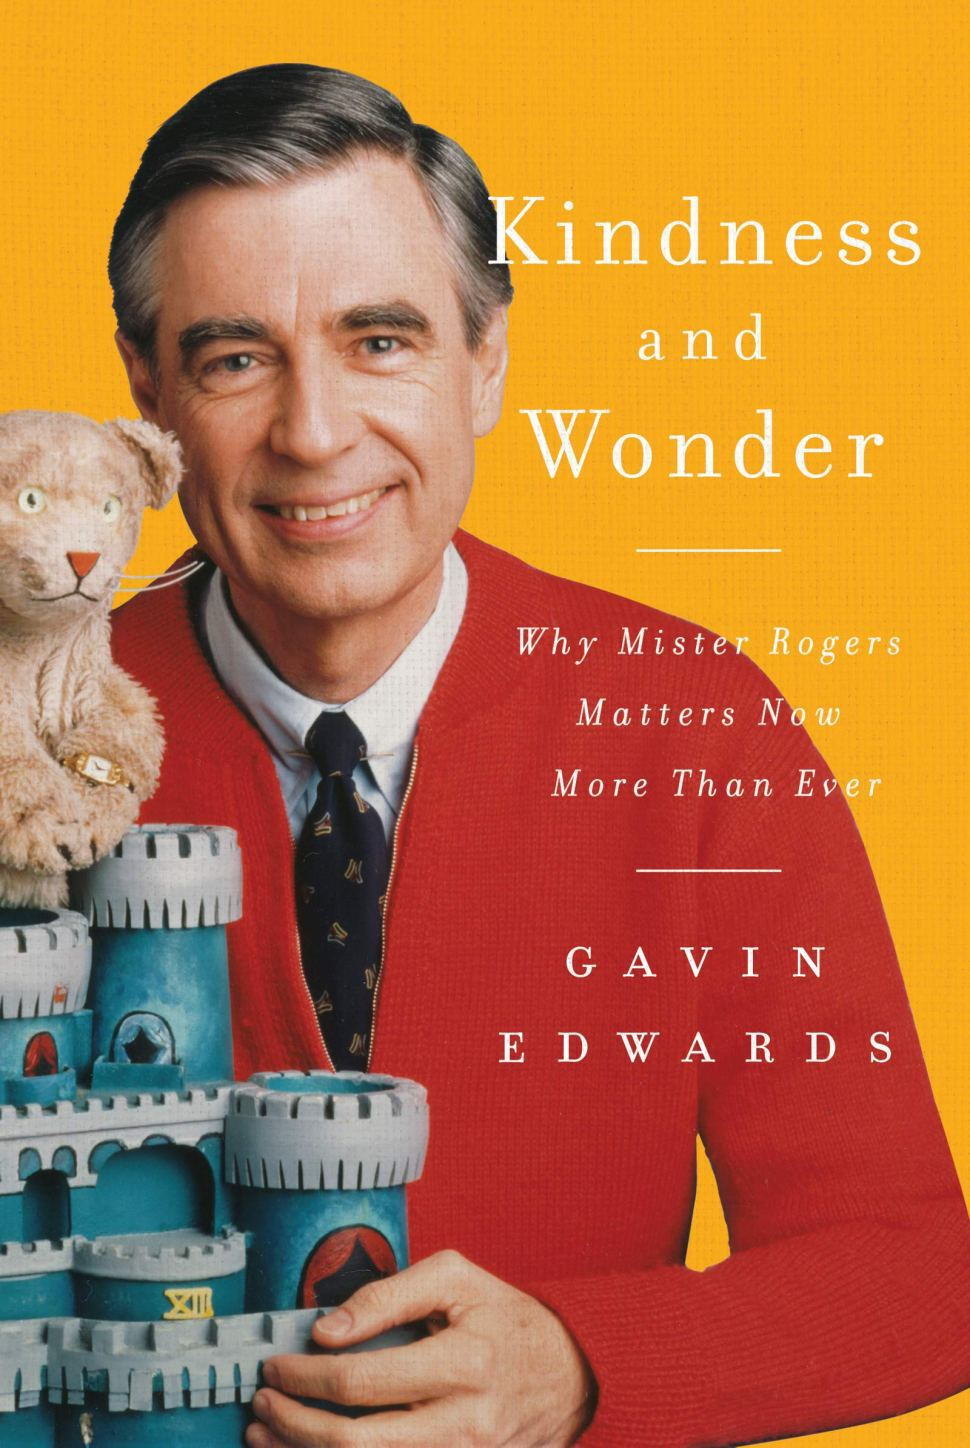 Kindness and Wonder: Mr Rogers biography is a study in empathy and a deep, genuine love for children